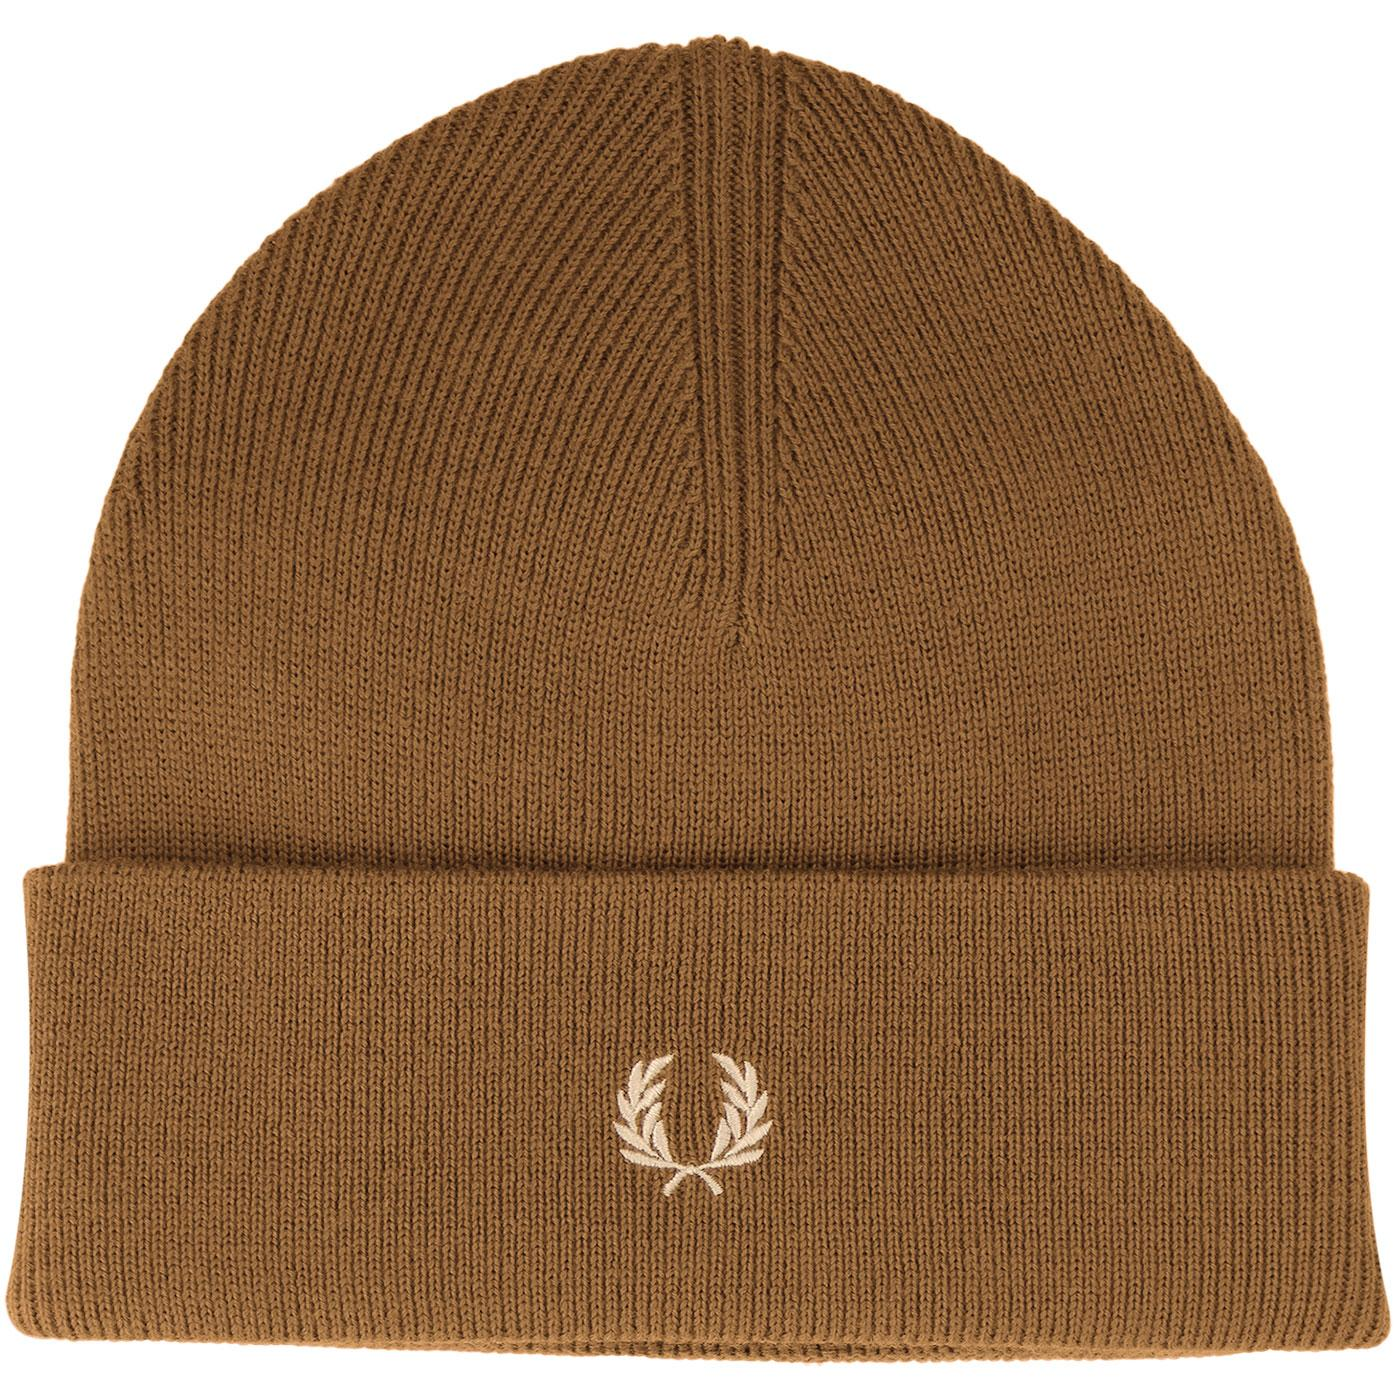 FRED PERRY Merino Wool Knitted Logo Beanie Hat (C)